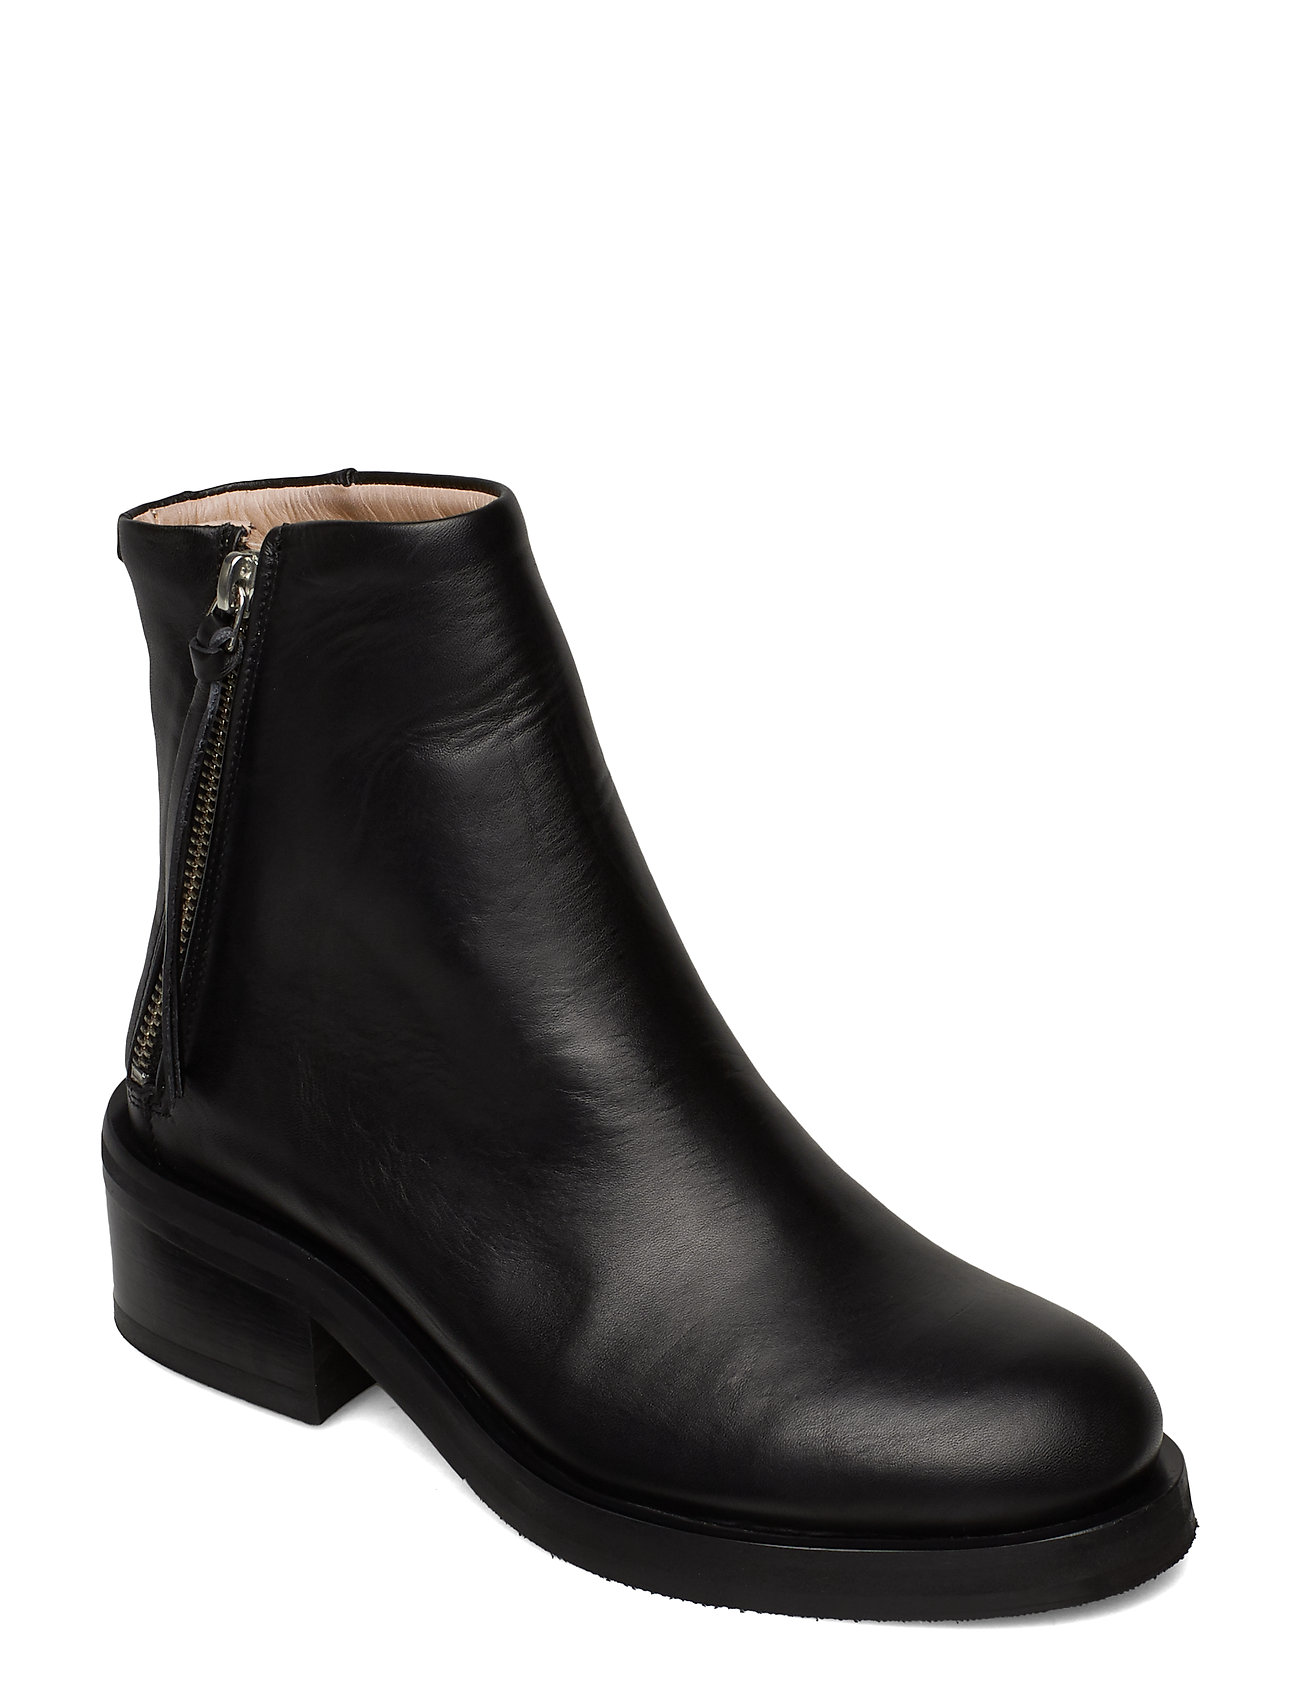 Image of District Ankle Boot Shoes Boots Ankle Boots Ankle Boots With Heel Sort Royal RepubliQ (3198433285)